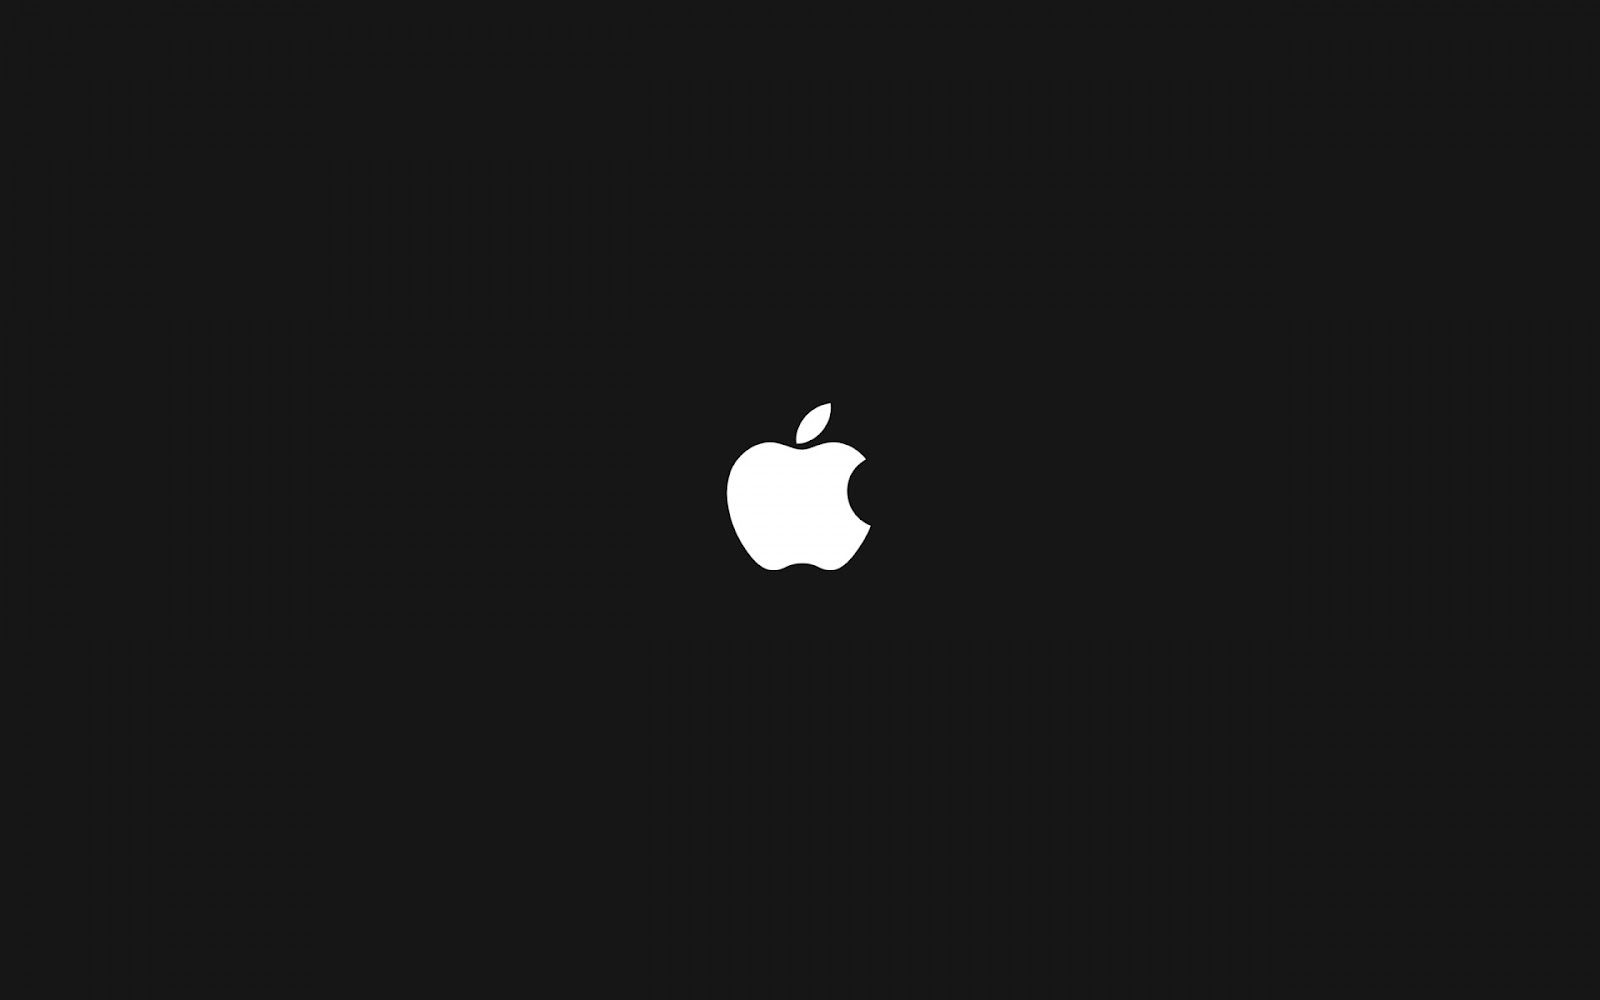 apple wallpaper hd 1080p: apple wide wallpapers | download